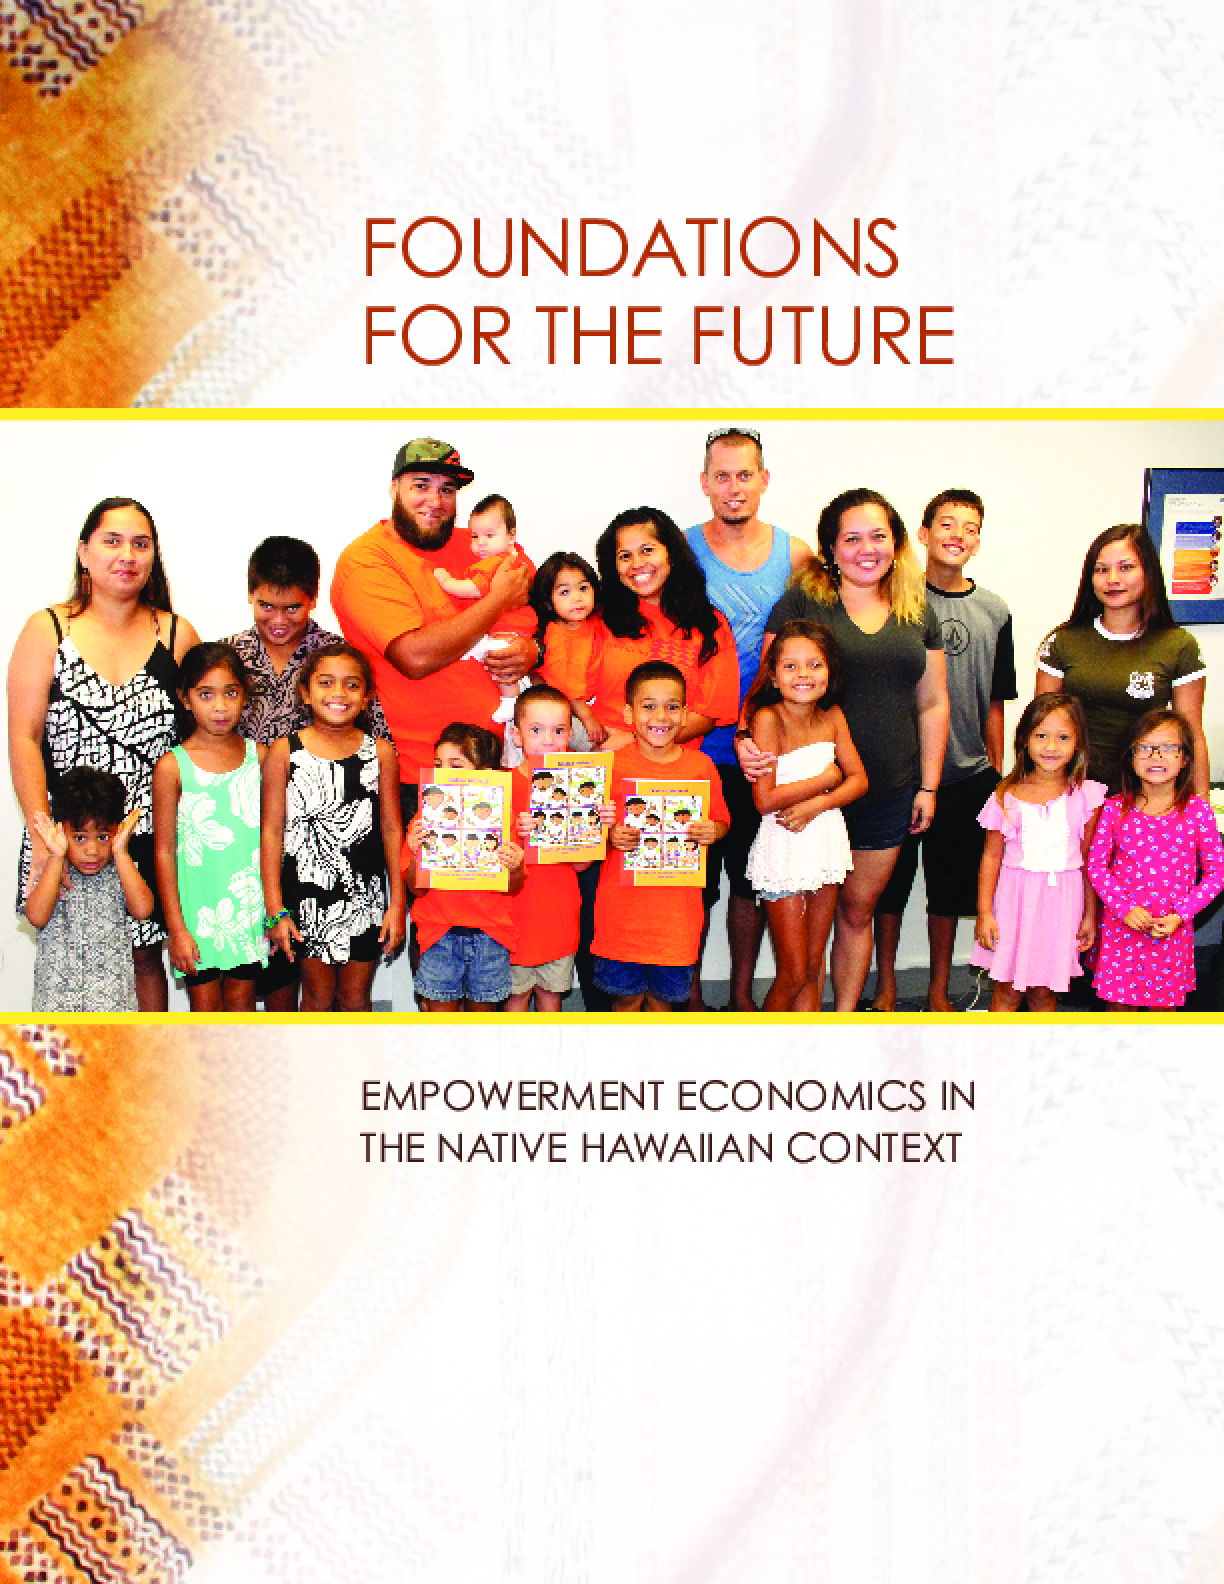 Foundations for the Future: Empowerment Economics in the Native Hawaiian Context